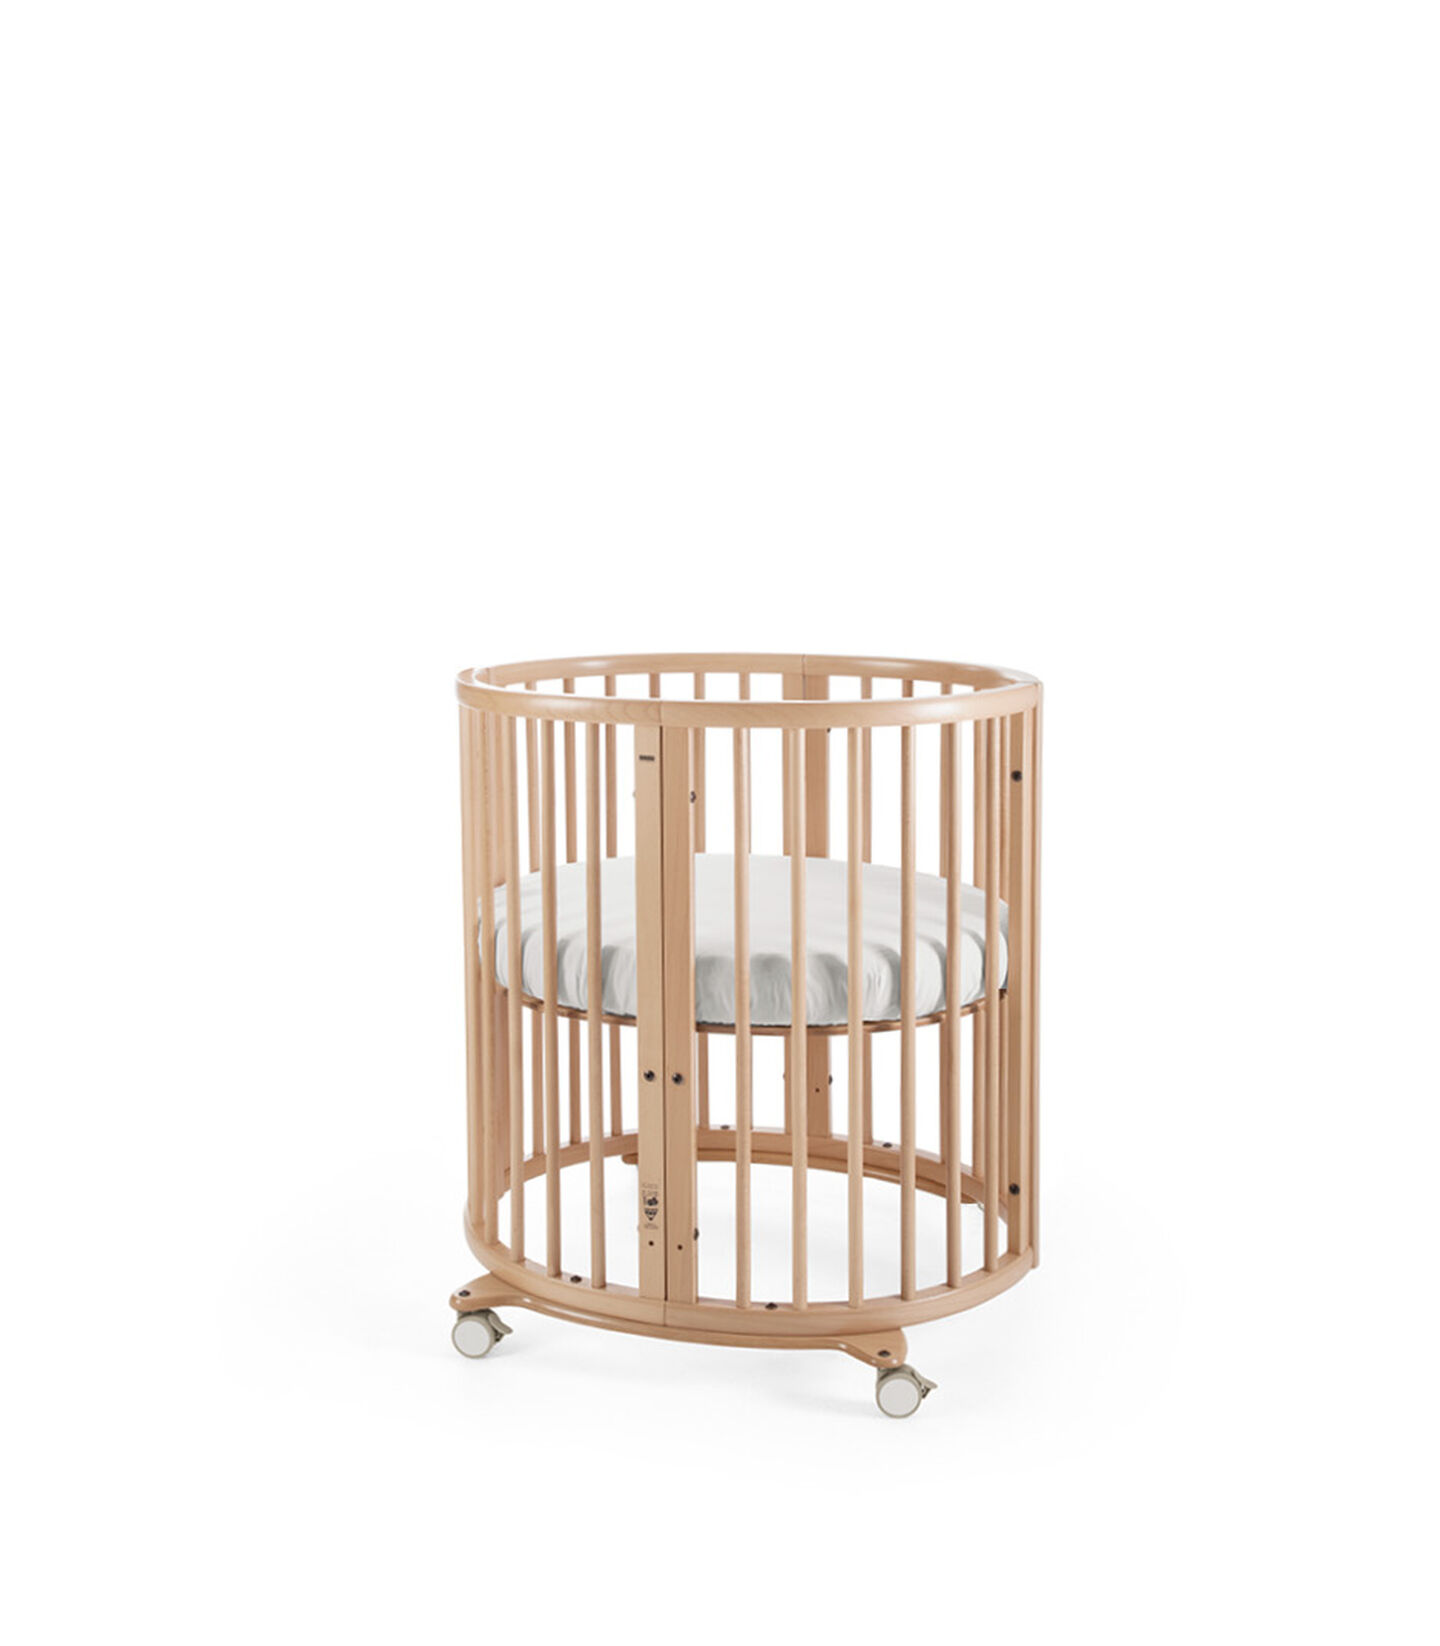 Stokke® Sleepi™ Mini Natural, Natural, mainview view 2